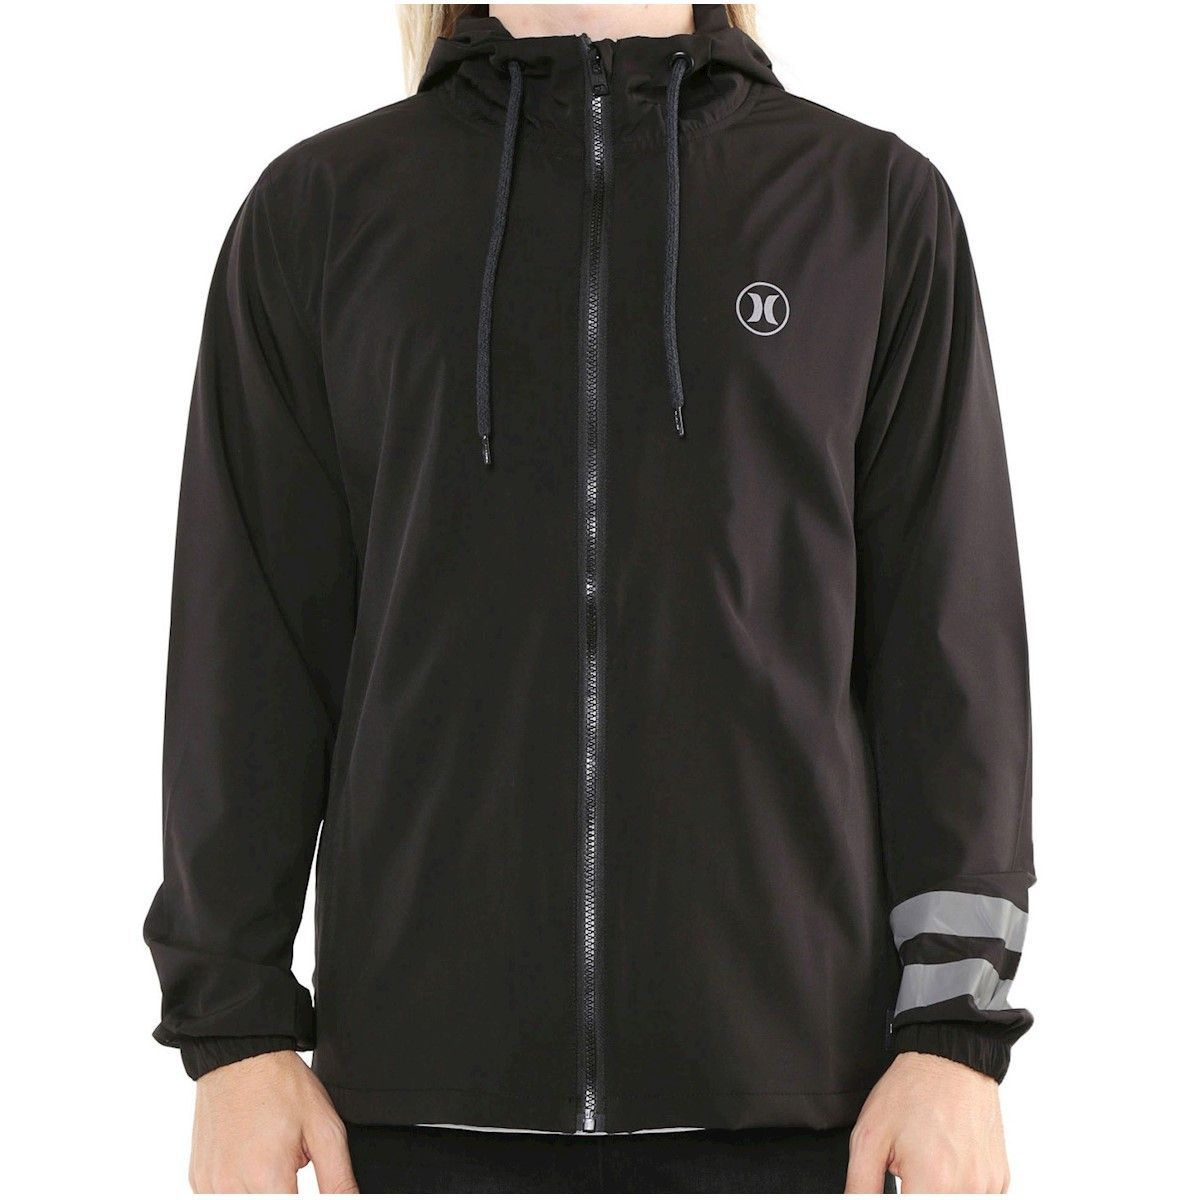 Jaqueta Corta Vento Hurley Windbreaker Block Party